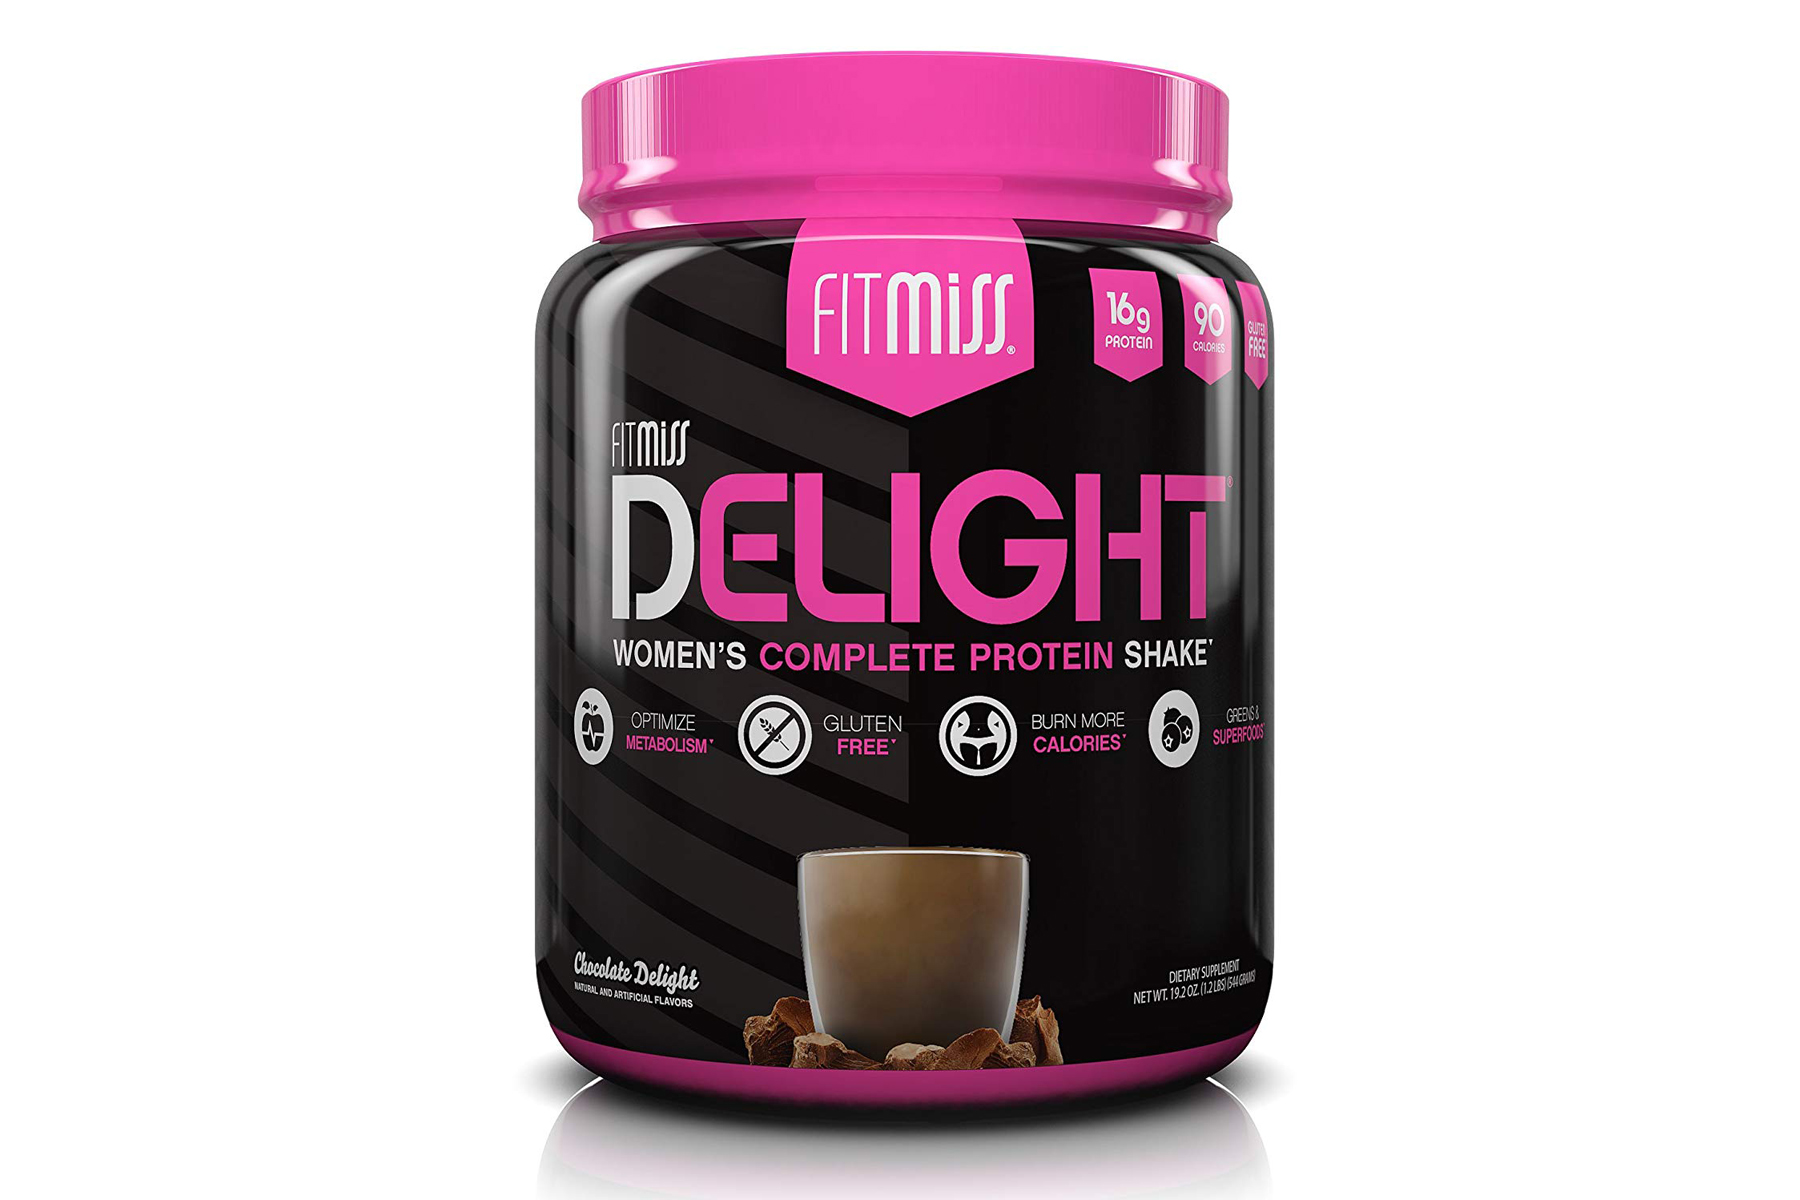 Equate vanilla weight loss shake